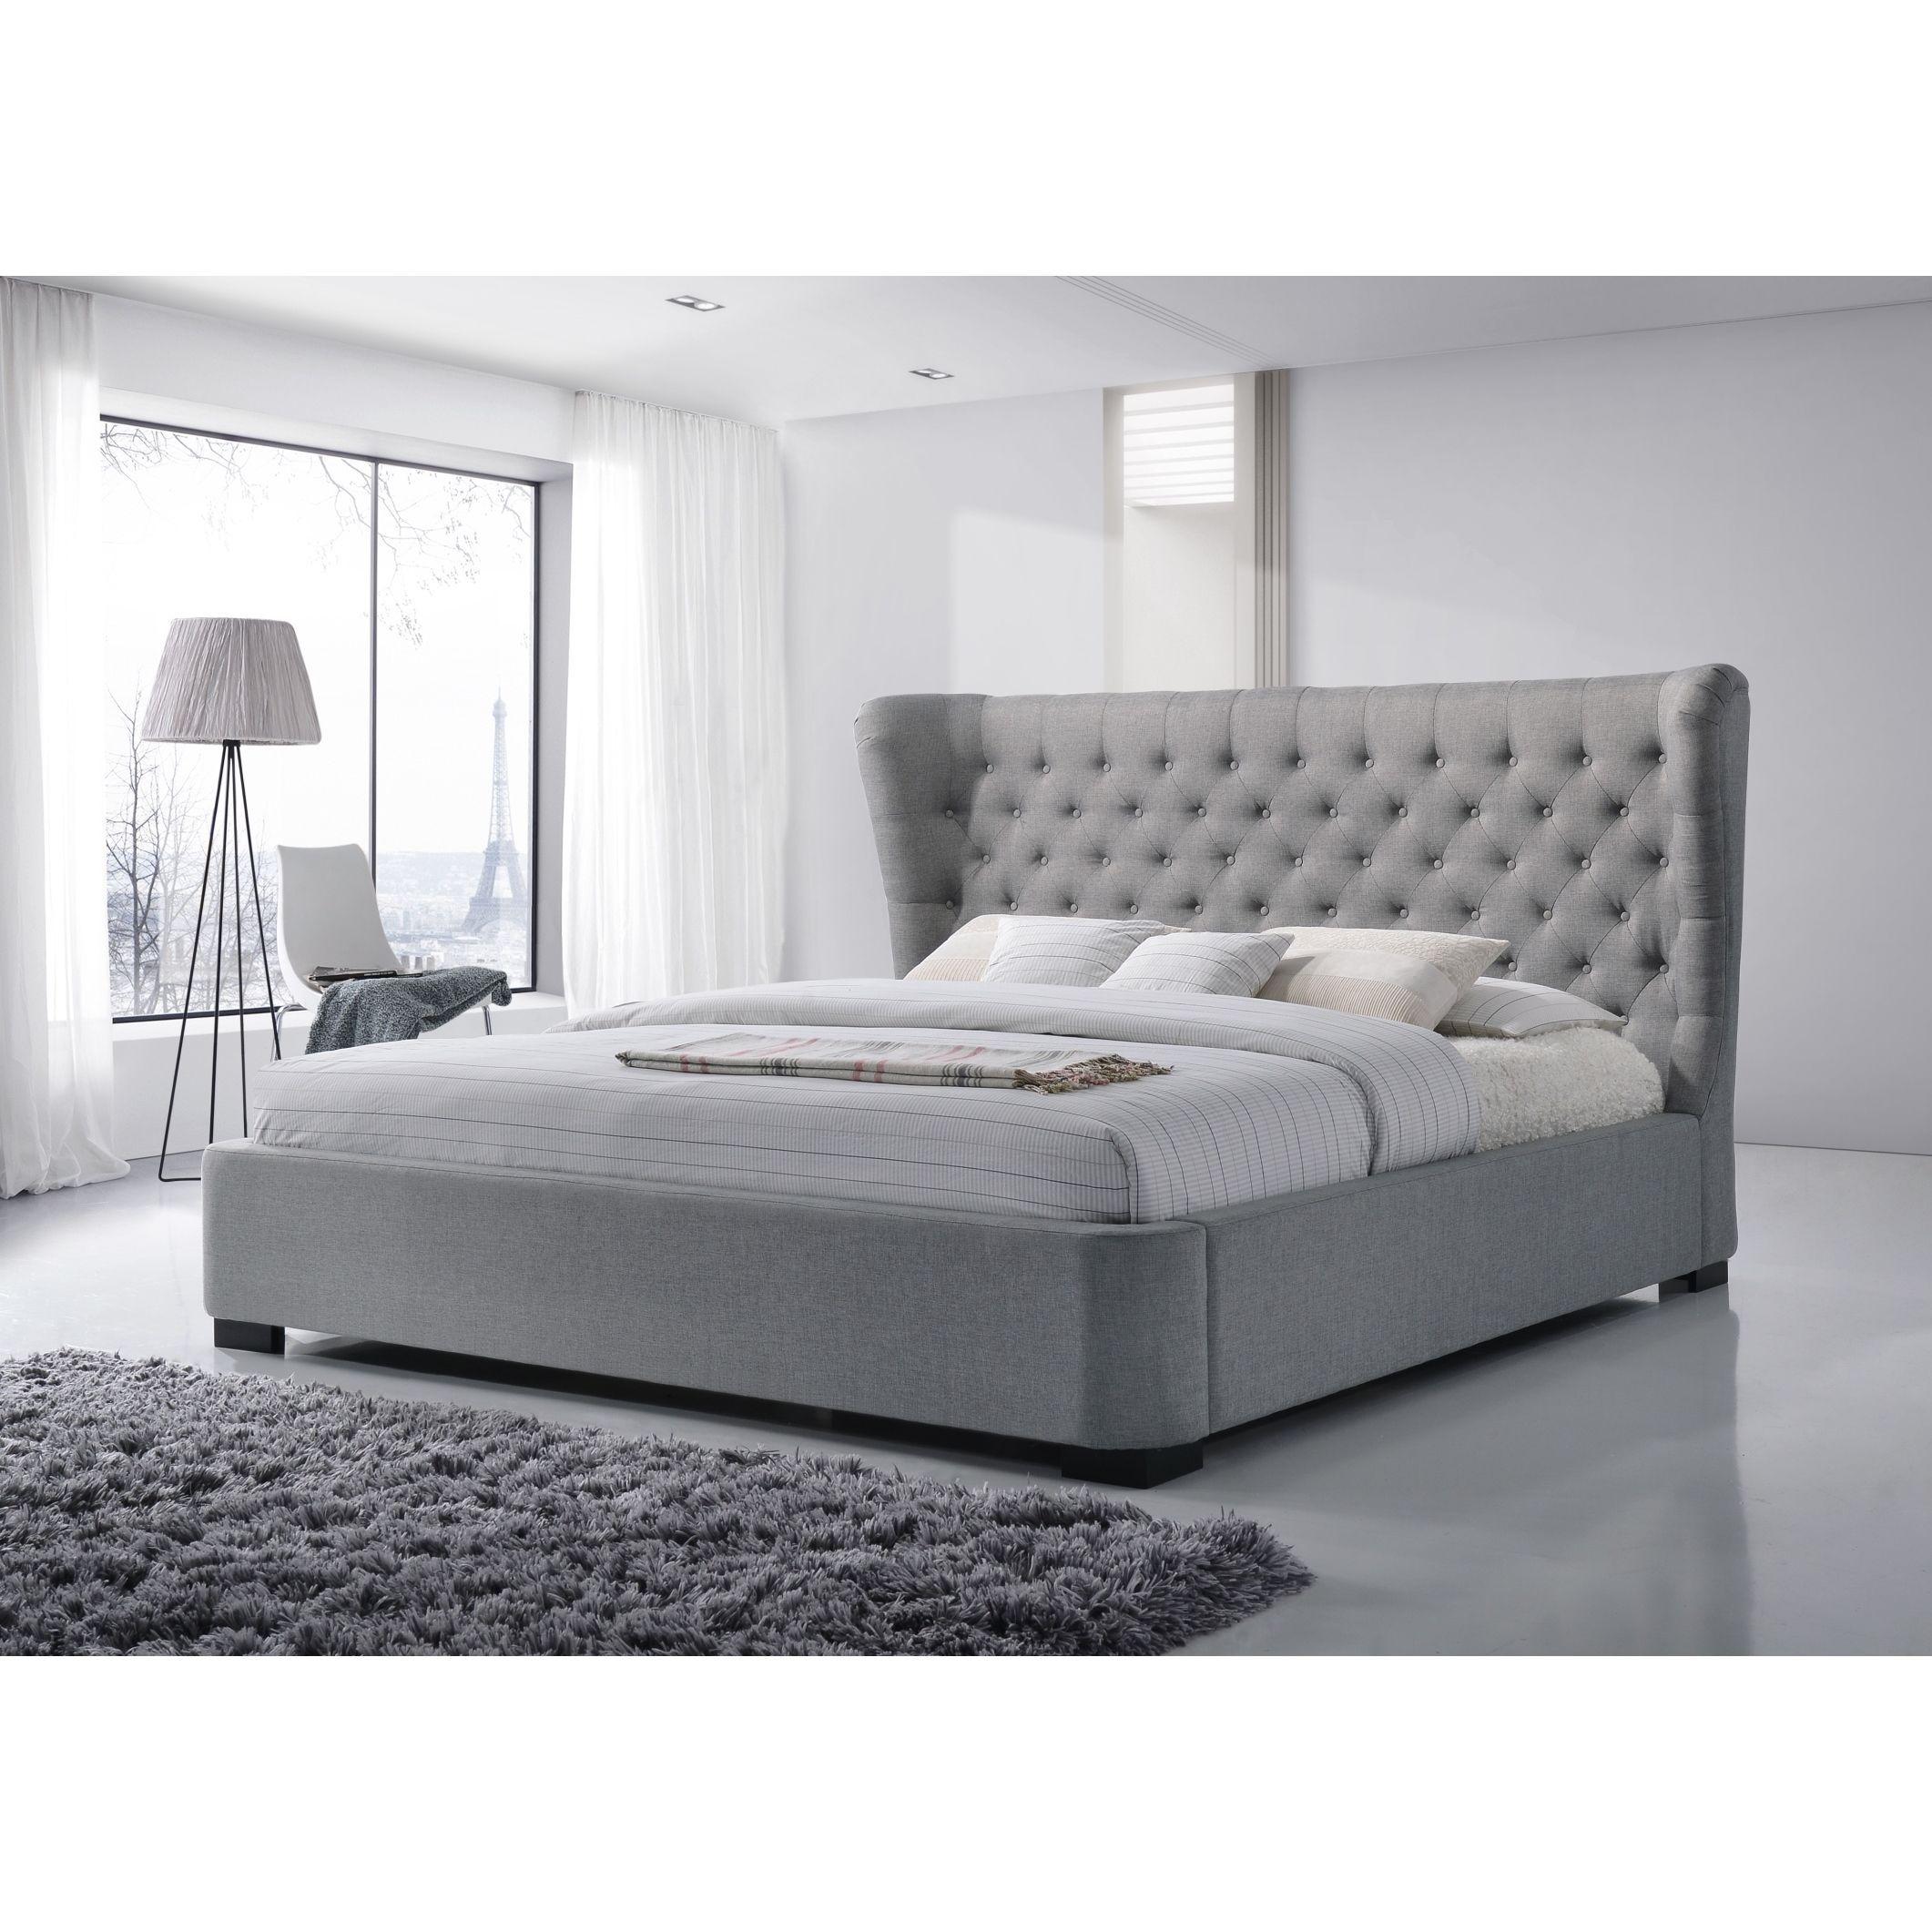 Manchester King Size Tufted Wing Upholstered Grey Platform Bed 1 399 99 At